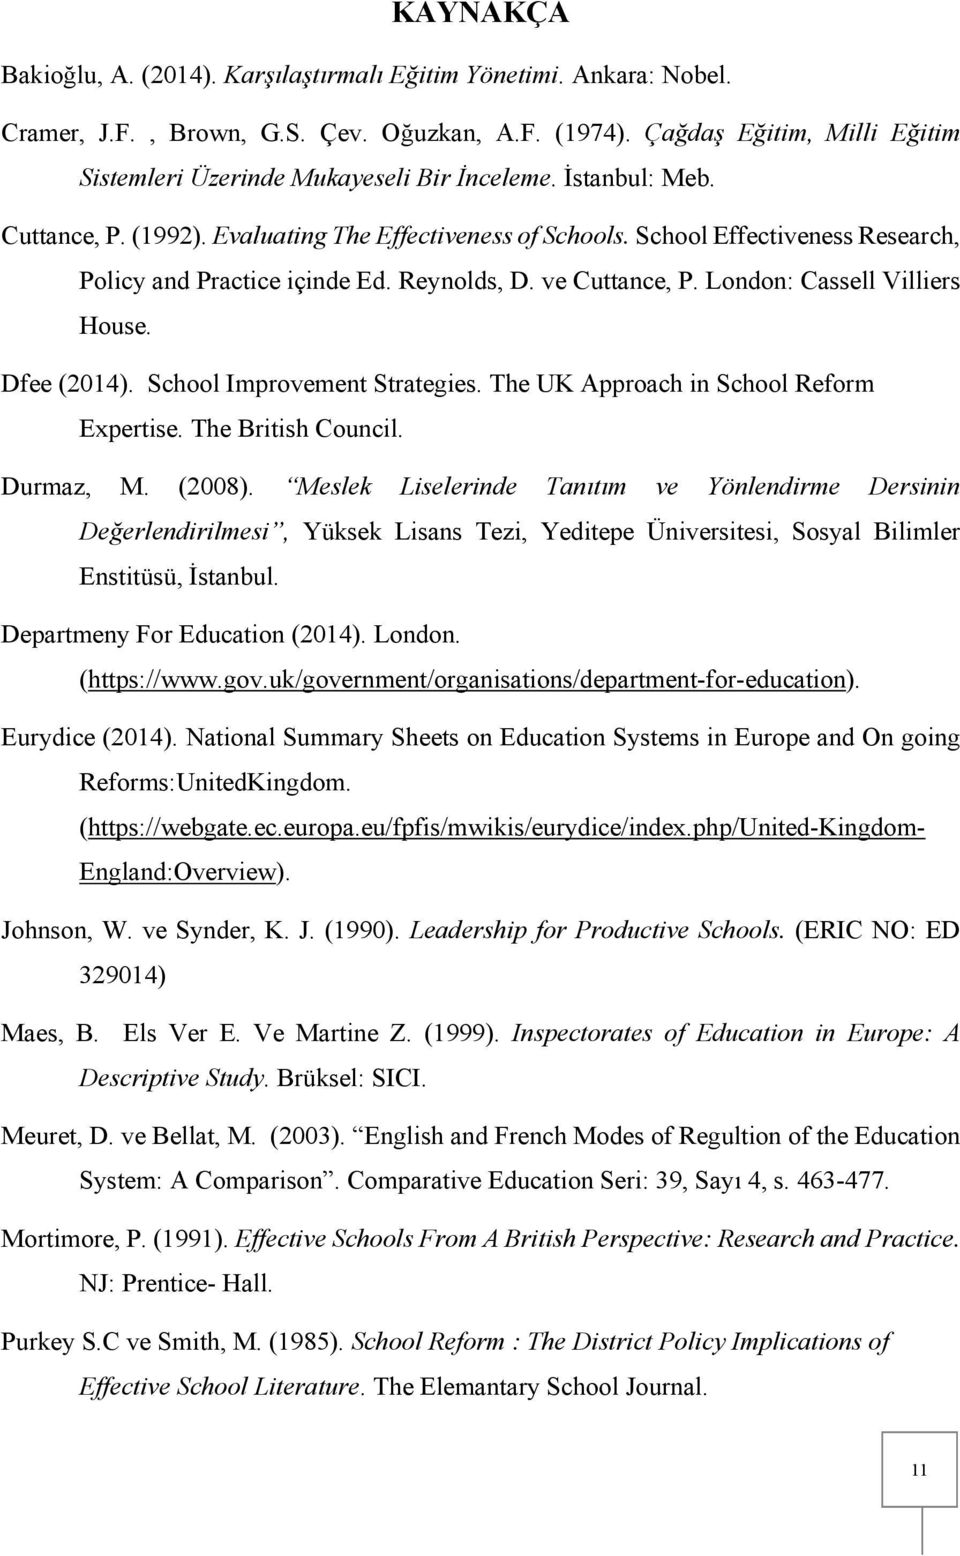 School Effectiveness Research, Policy and Practice içinde Ed. Reynolds, D. ve Cuttance, P. London: Cassell Villiers House. Dfee (2014). School Improvement Strategies.